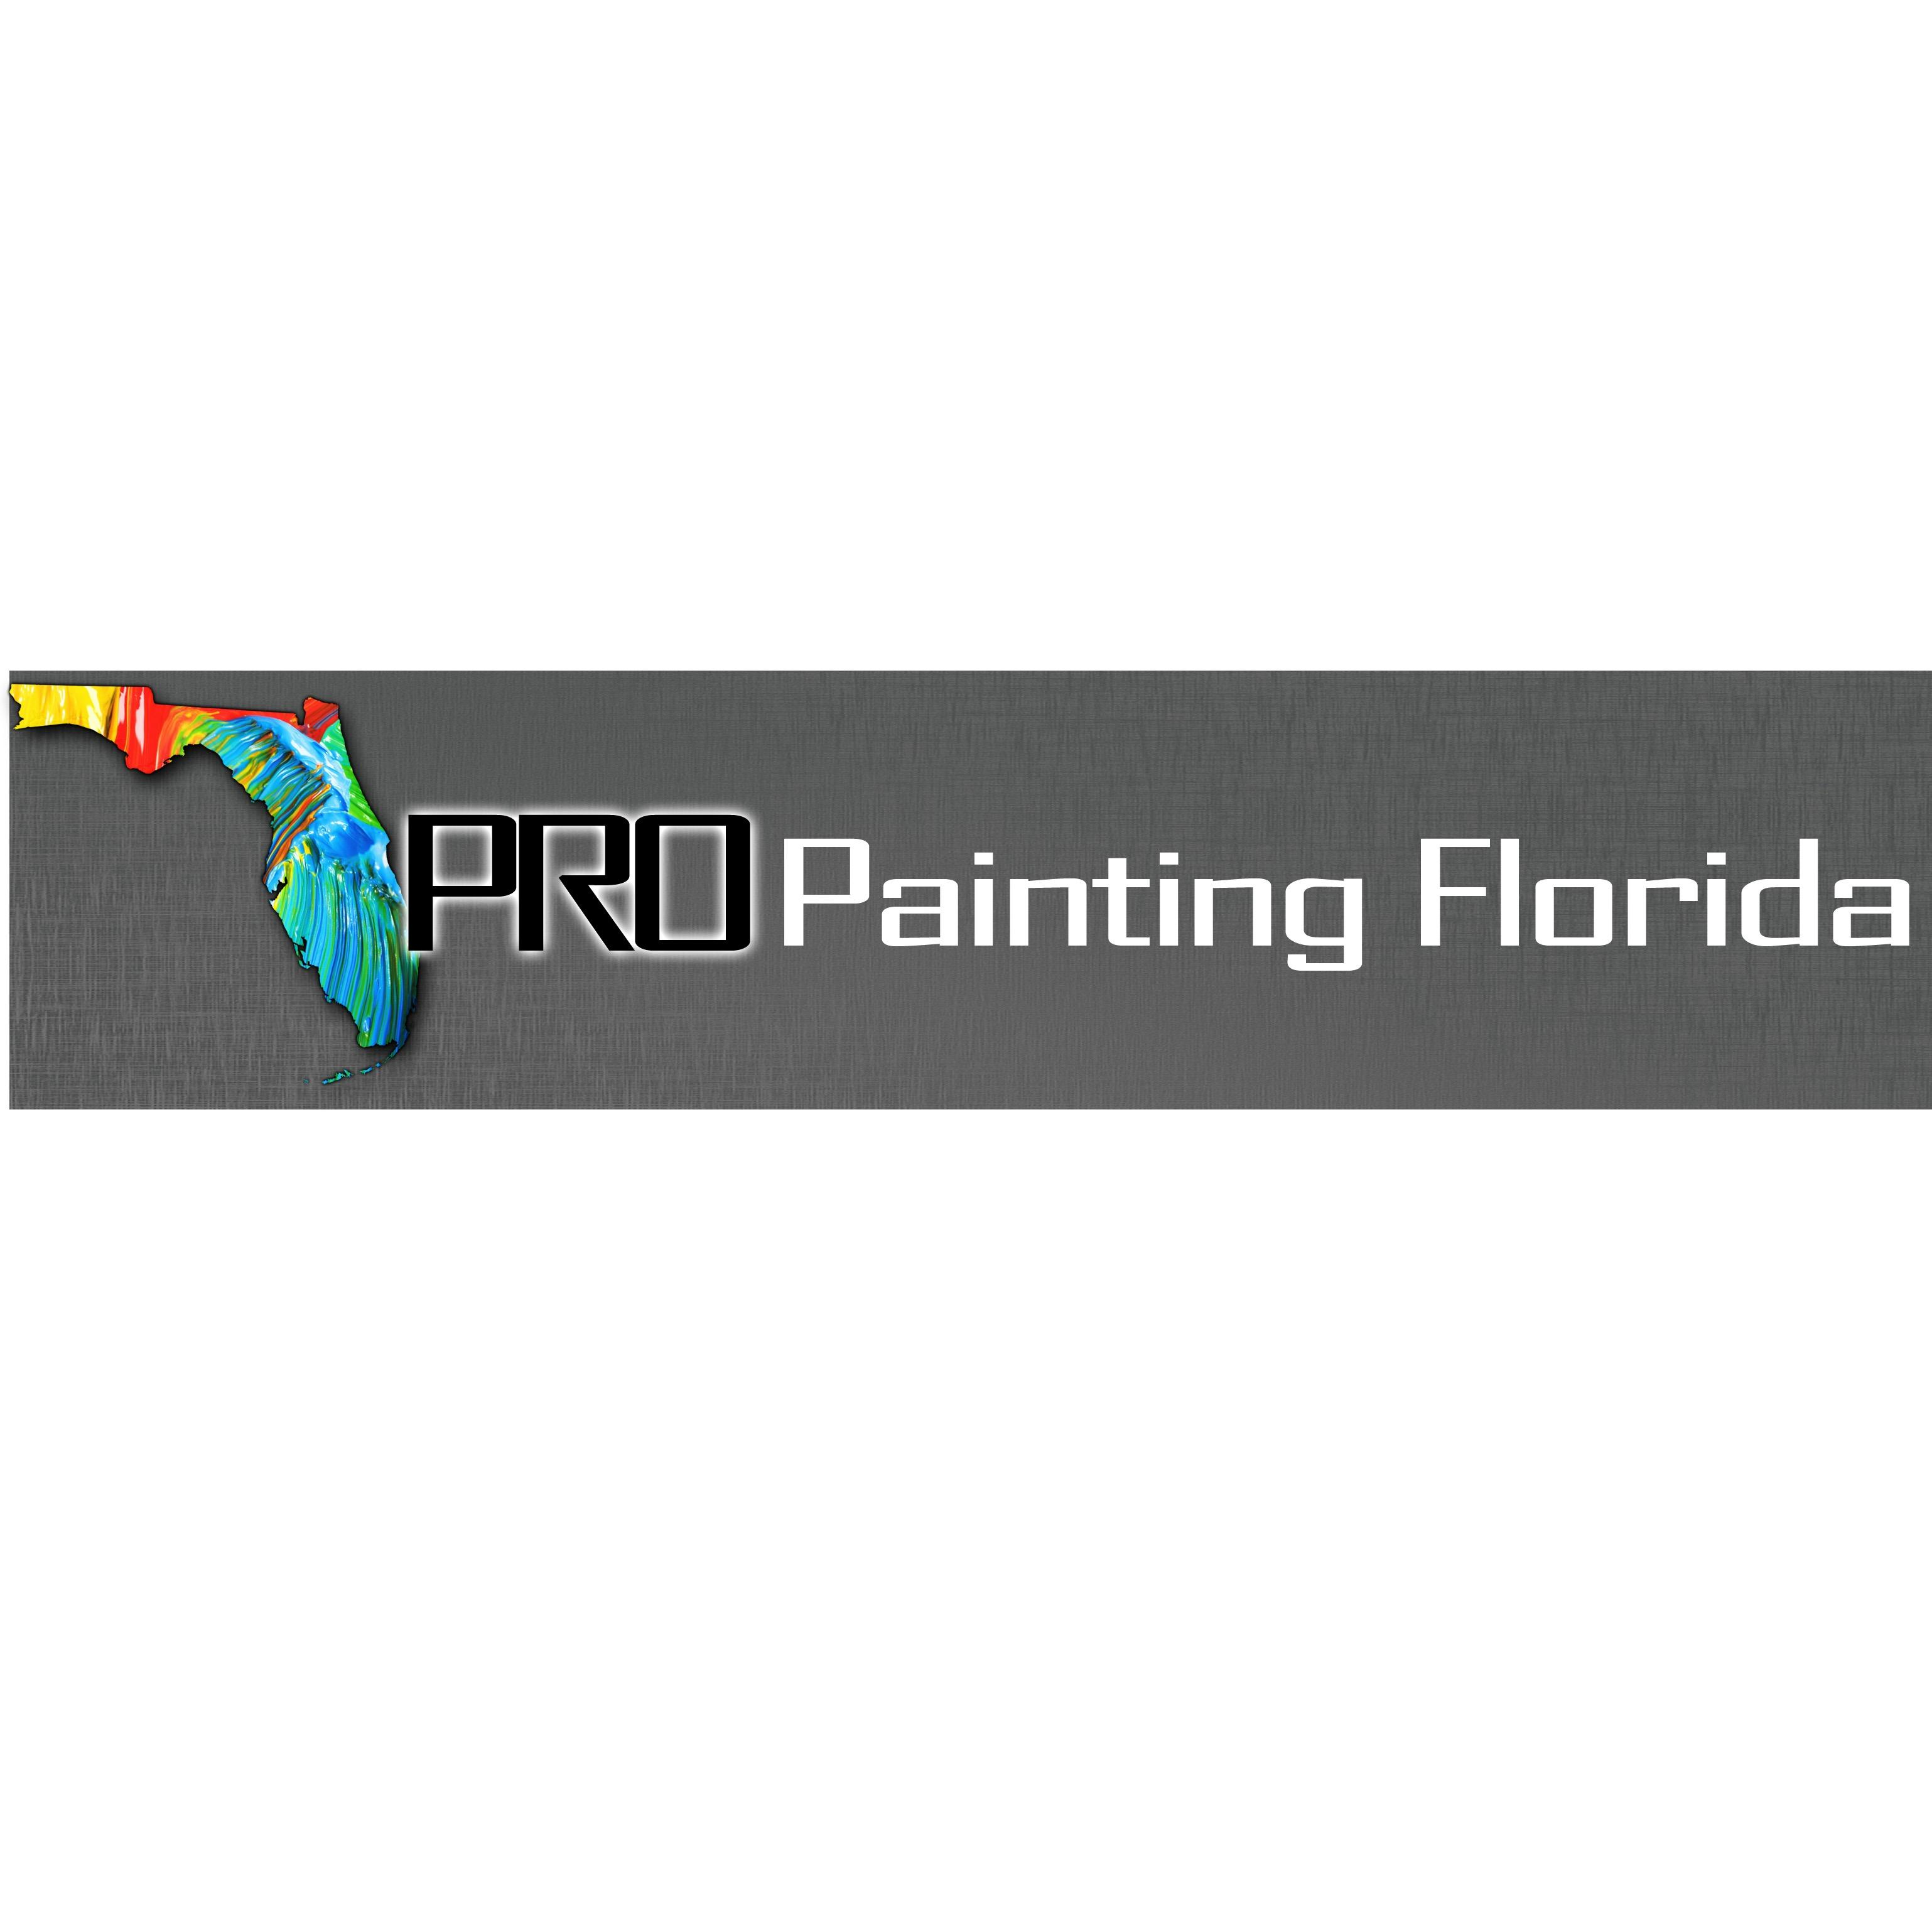 Pro Painting Florida - Highland City, FL - Painters & Painting Contractors